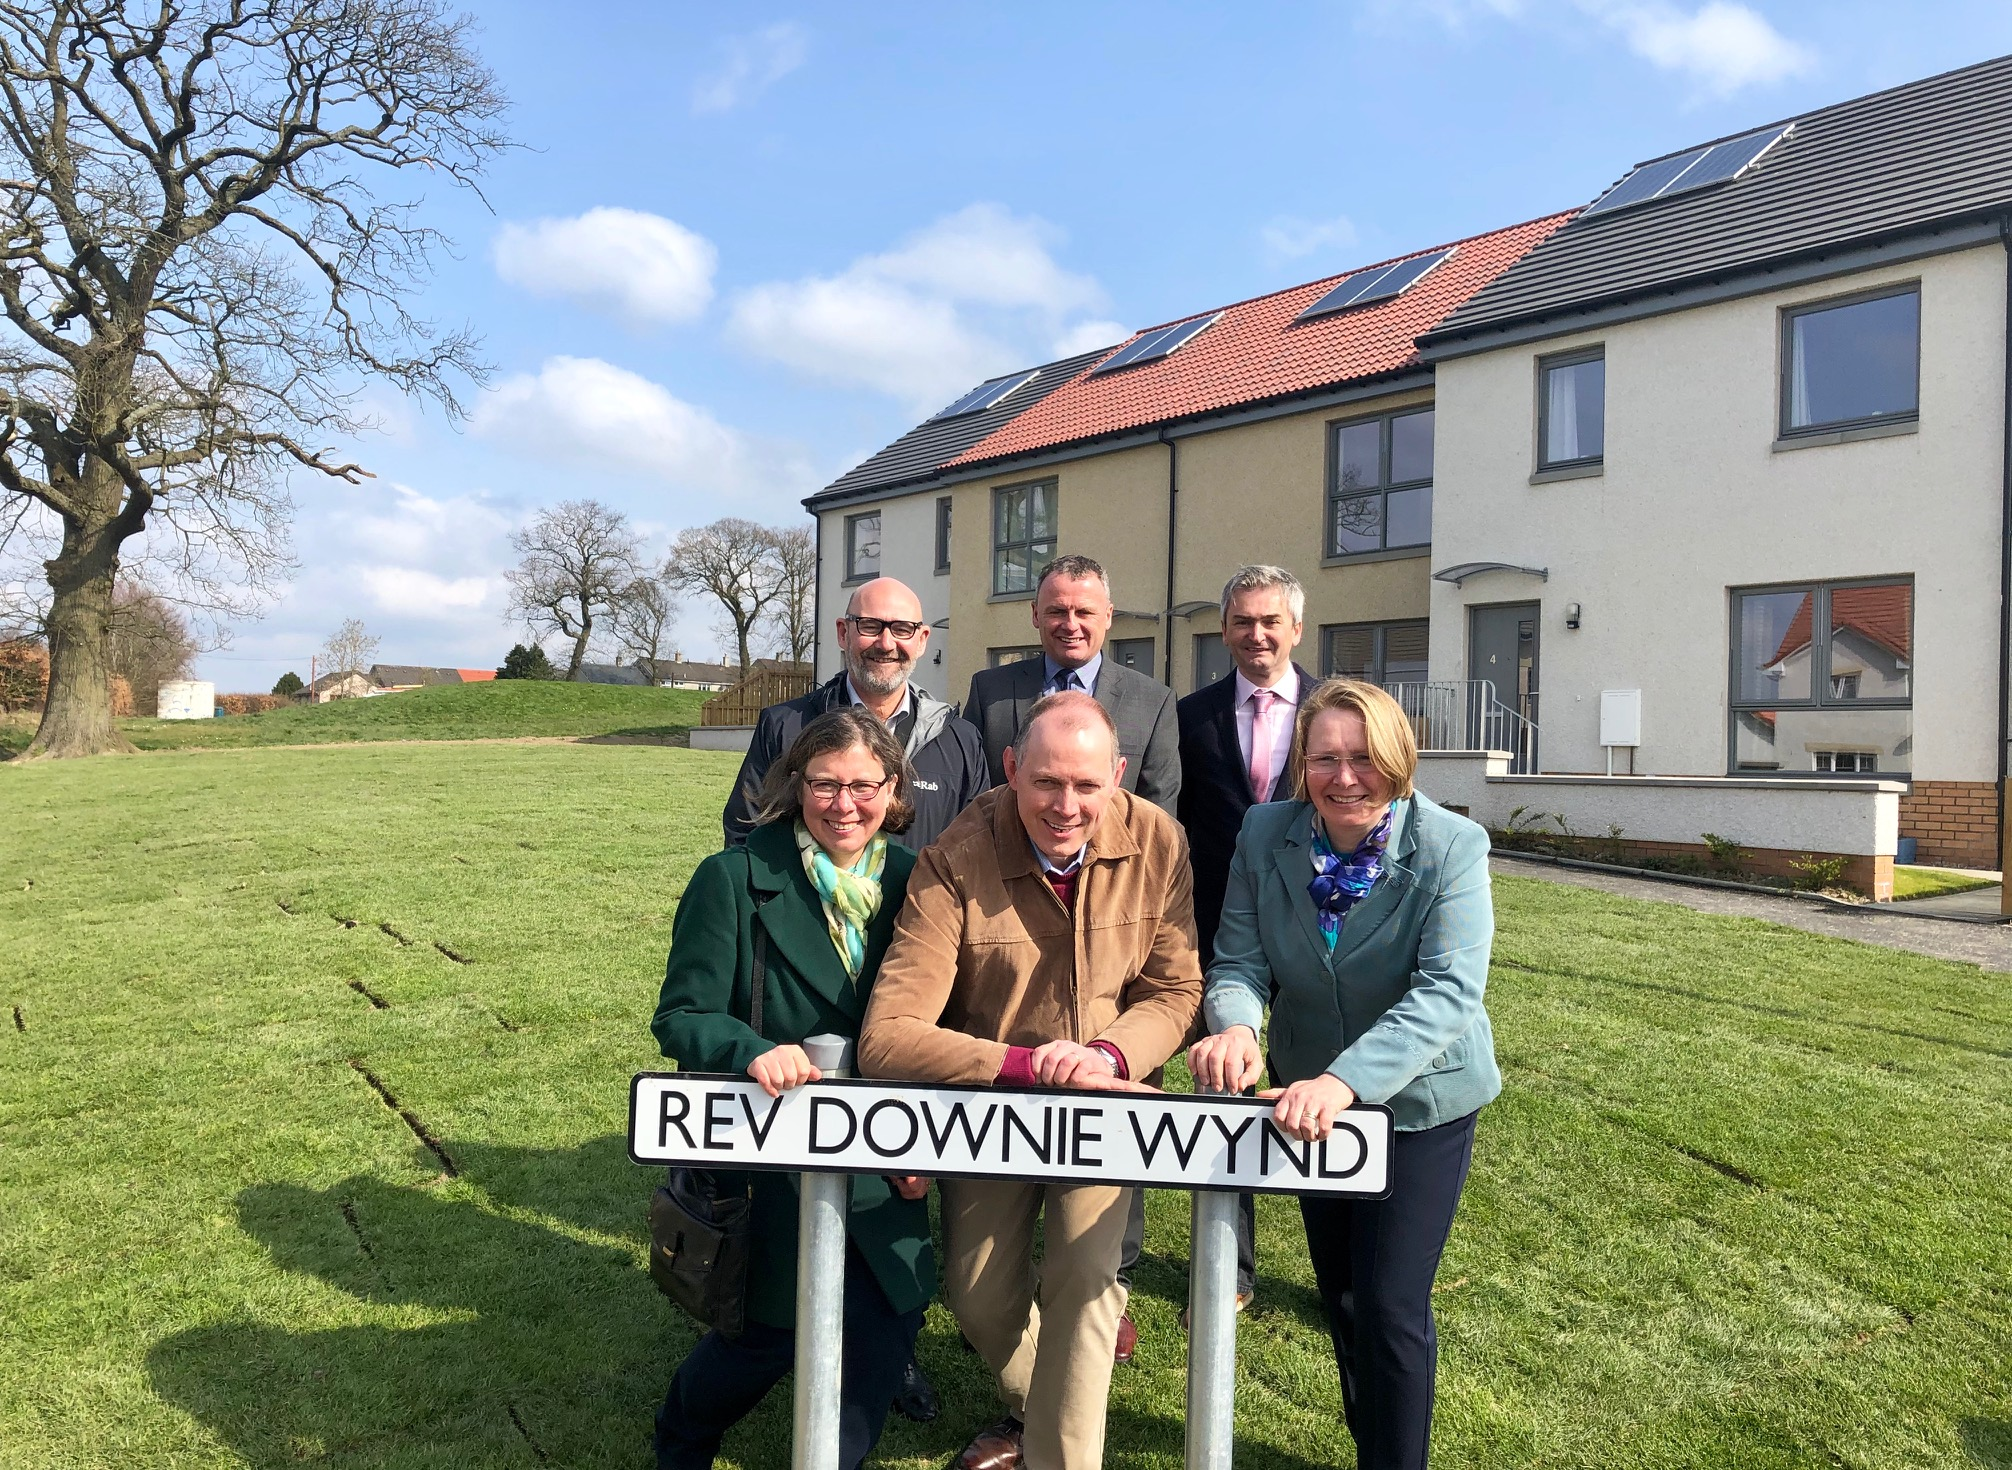 Front row: the Rev Downie's children Margaret Gordon, Dr Alexander Downie and Allison MacNeill. Back row: Bill Banks (Kingdom), Dougie Herd (Campion Homes) and Moray Royles (City Architecture)